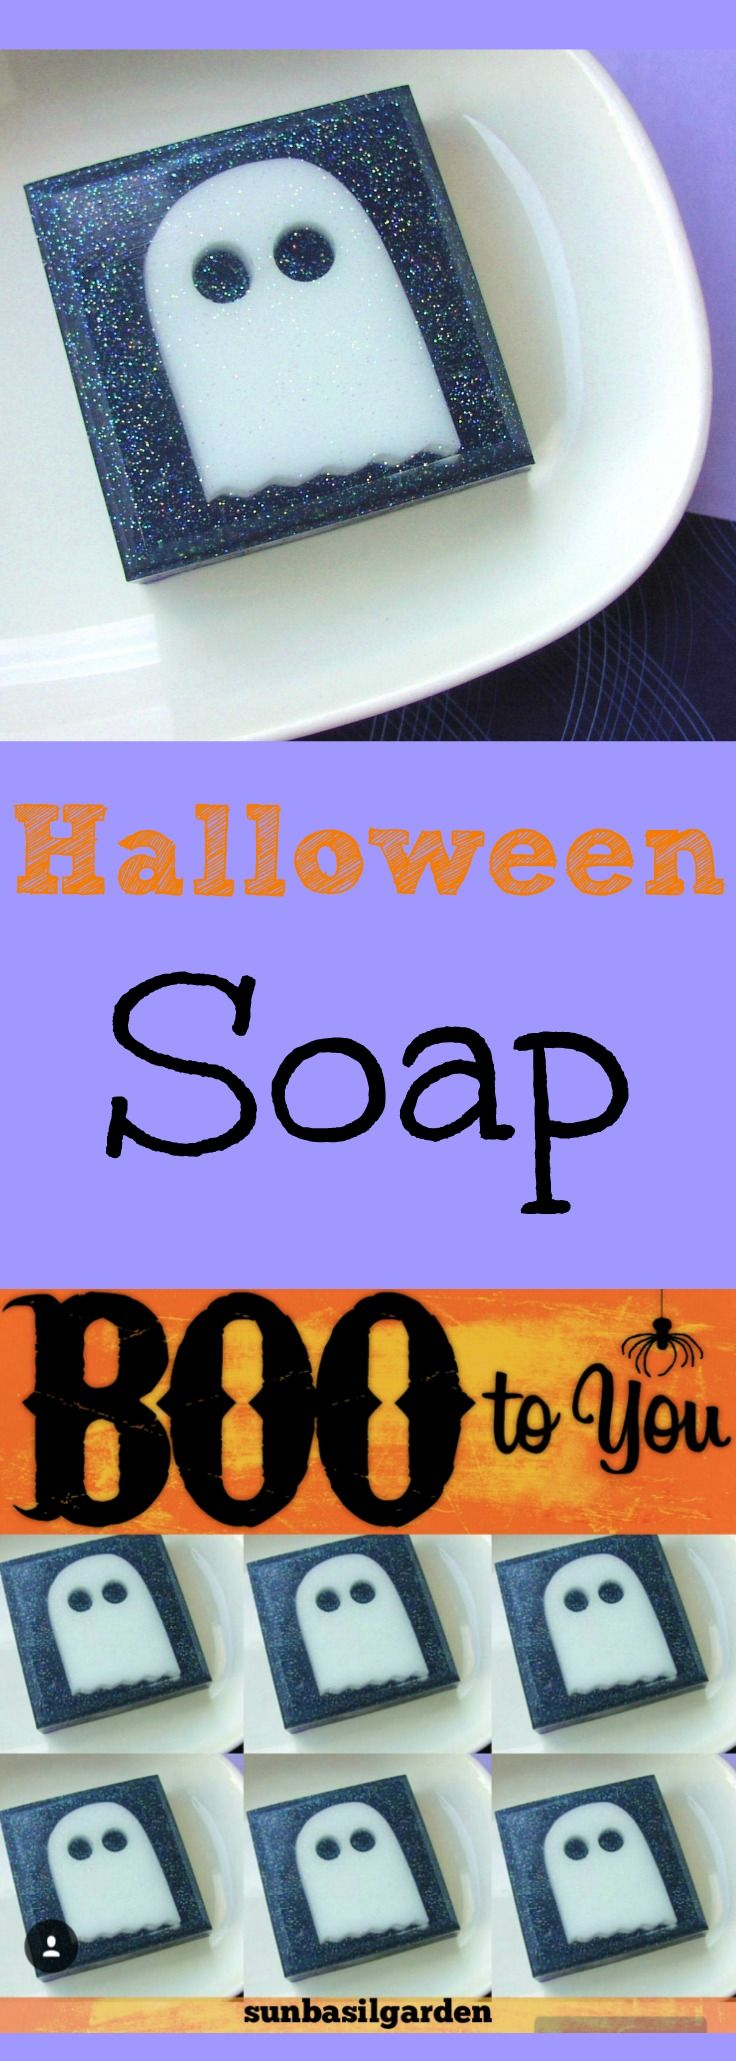 Halloween handcrafted soap ghost soap mr boo the soap ghost